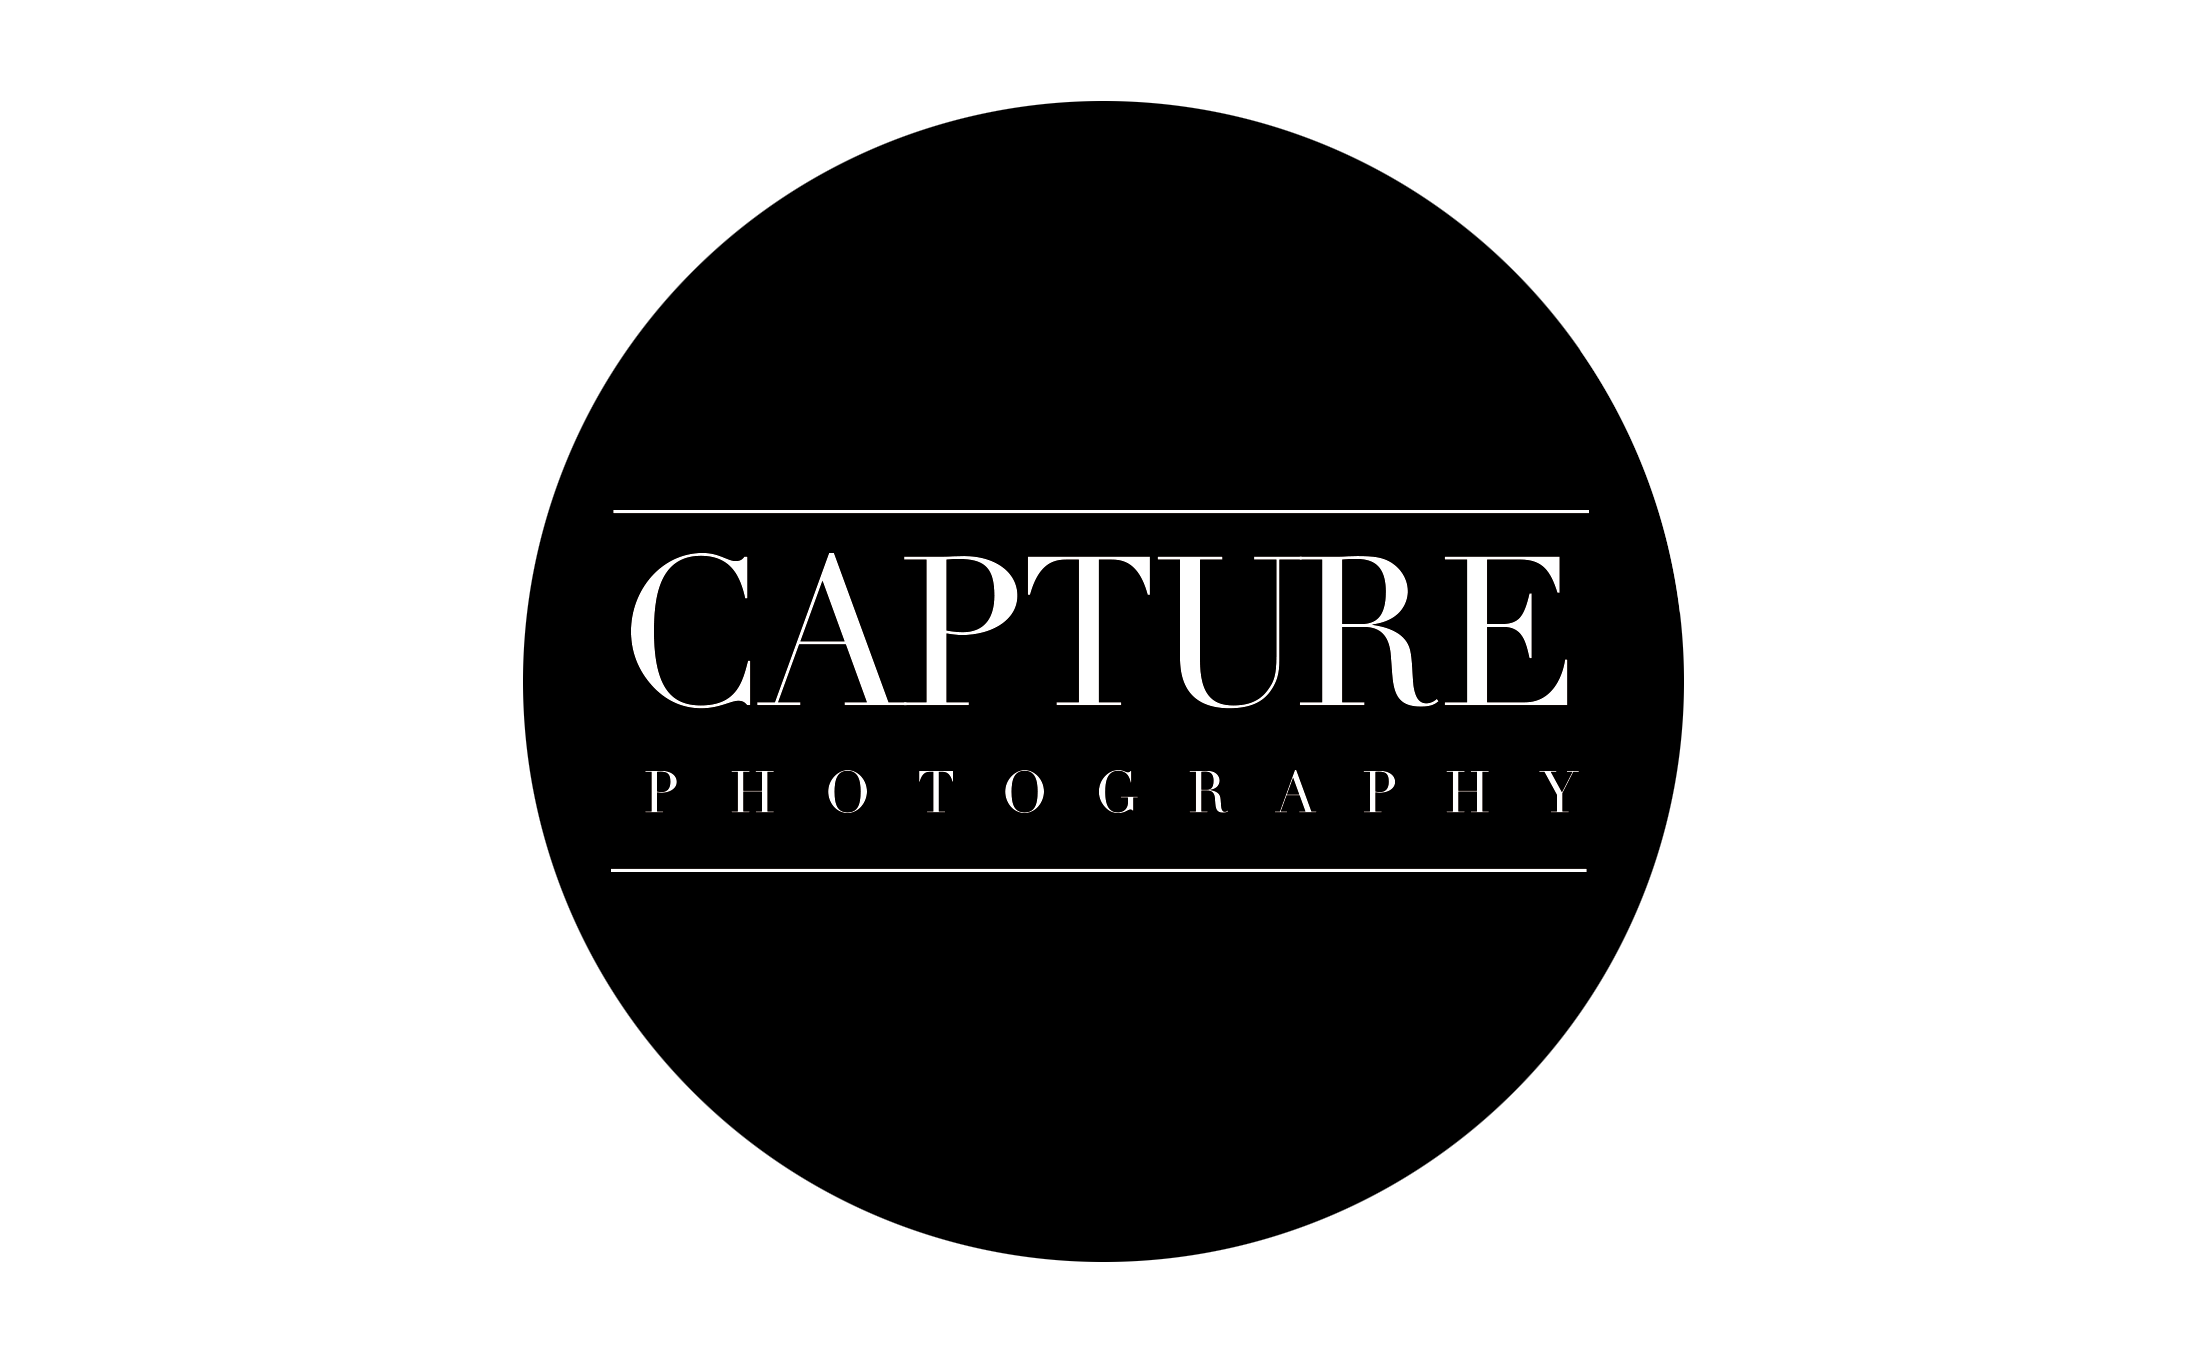 round capture photography logo white text on black.png